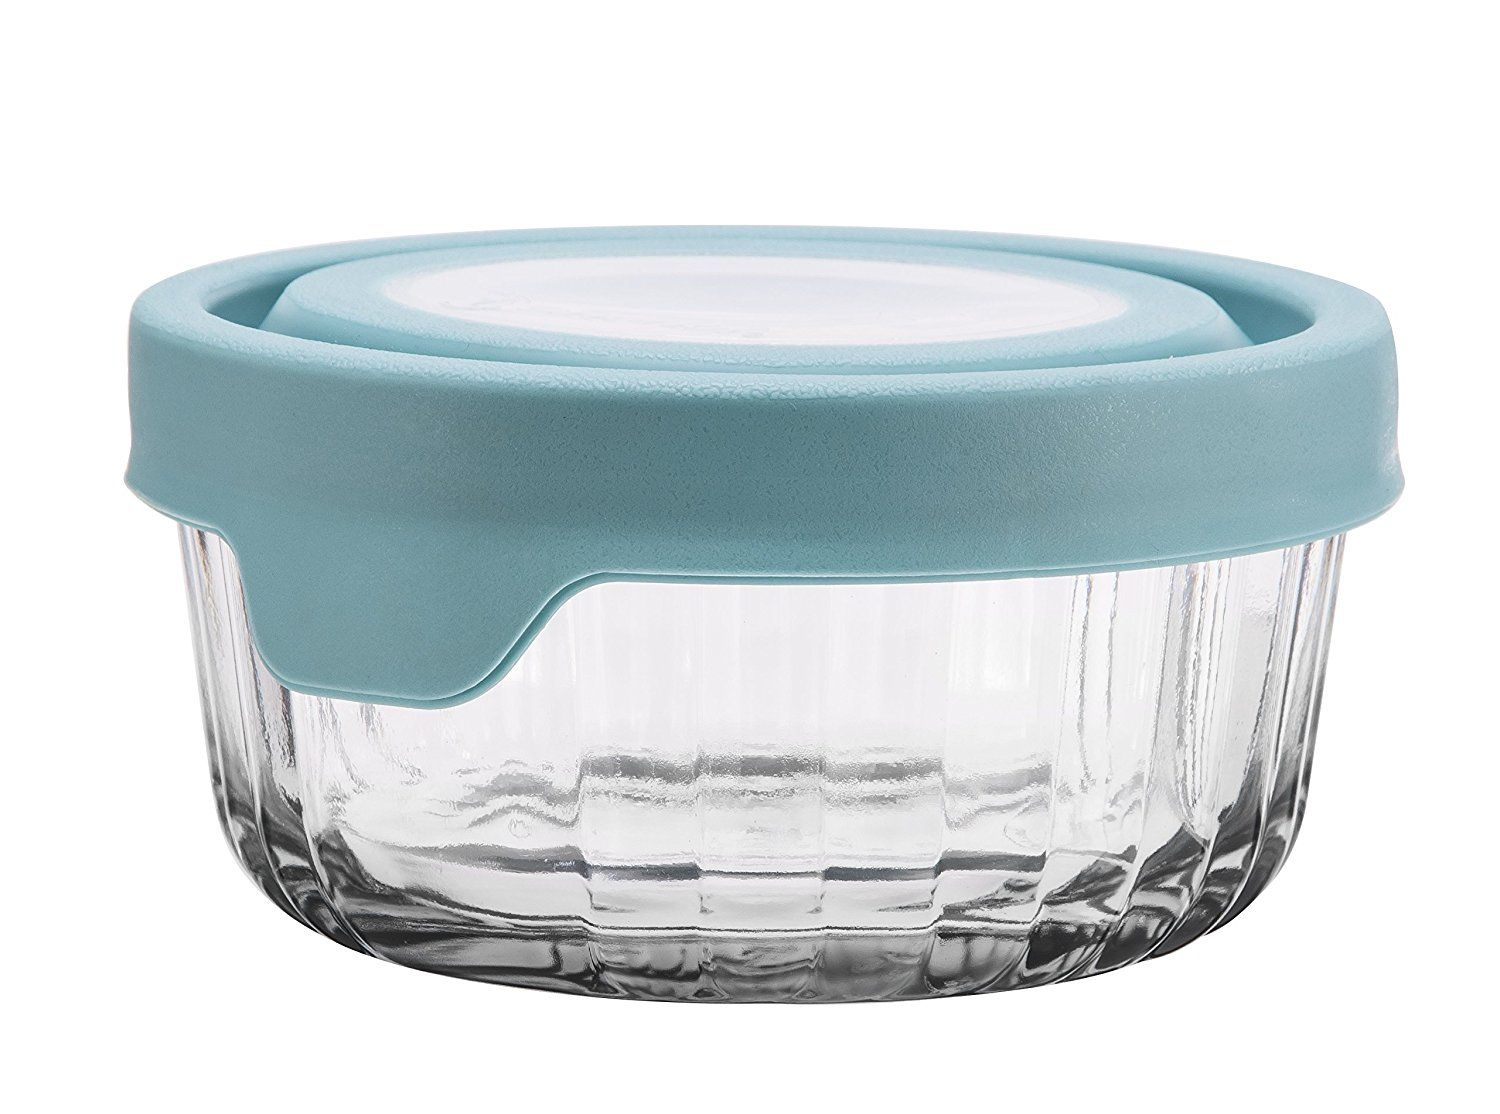 Amazon Com Anchor Hocking Trueseal Embossed Glass Food Storage Container With Airtight Lid Glass Food Storage Containers Food Storage Glass Storage